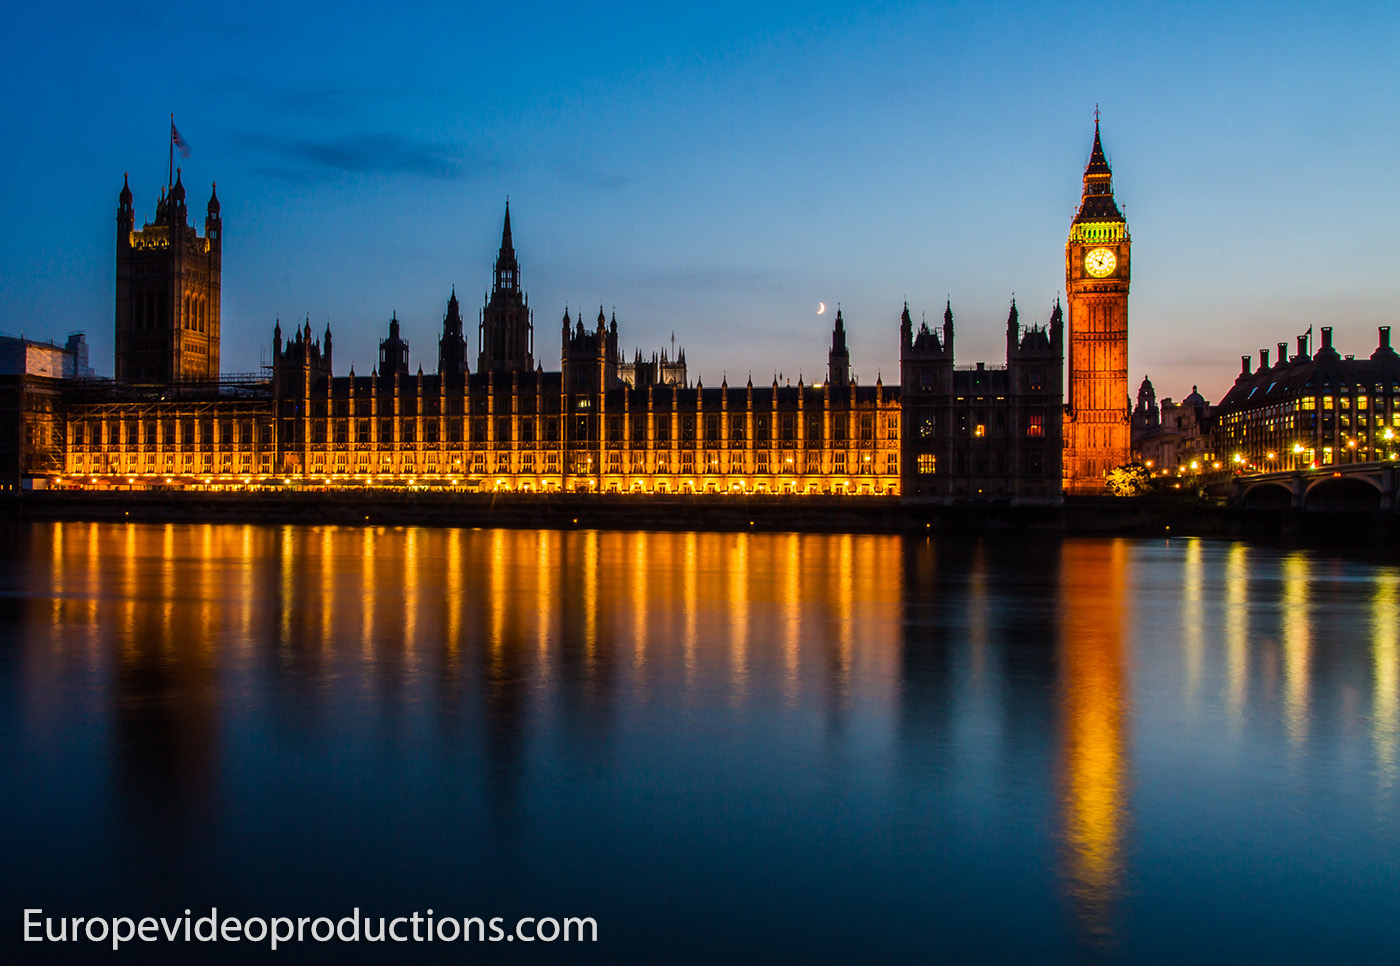 the tower of london the buckingham palace and the balance of westminster in the united kingdom Palace of westminster is a building with towers in london, england, united kingdom the four faces of the clock on the north tower the palace of westminster.